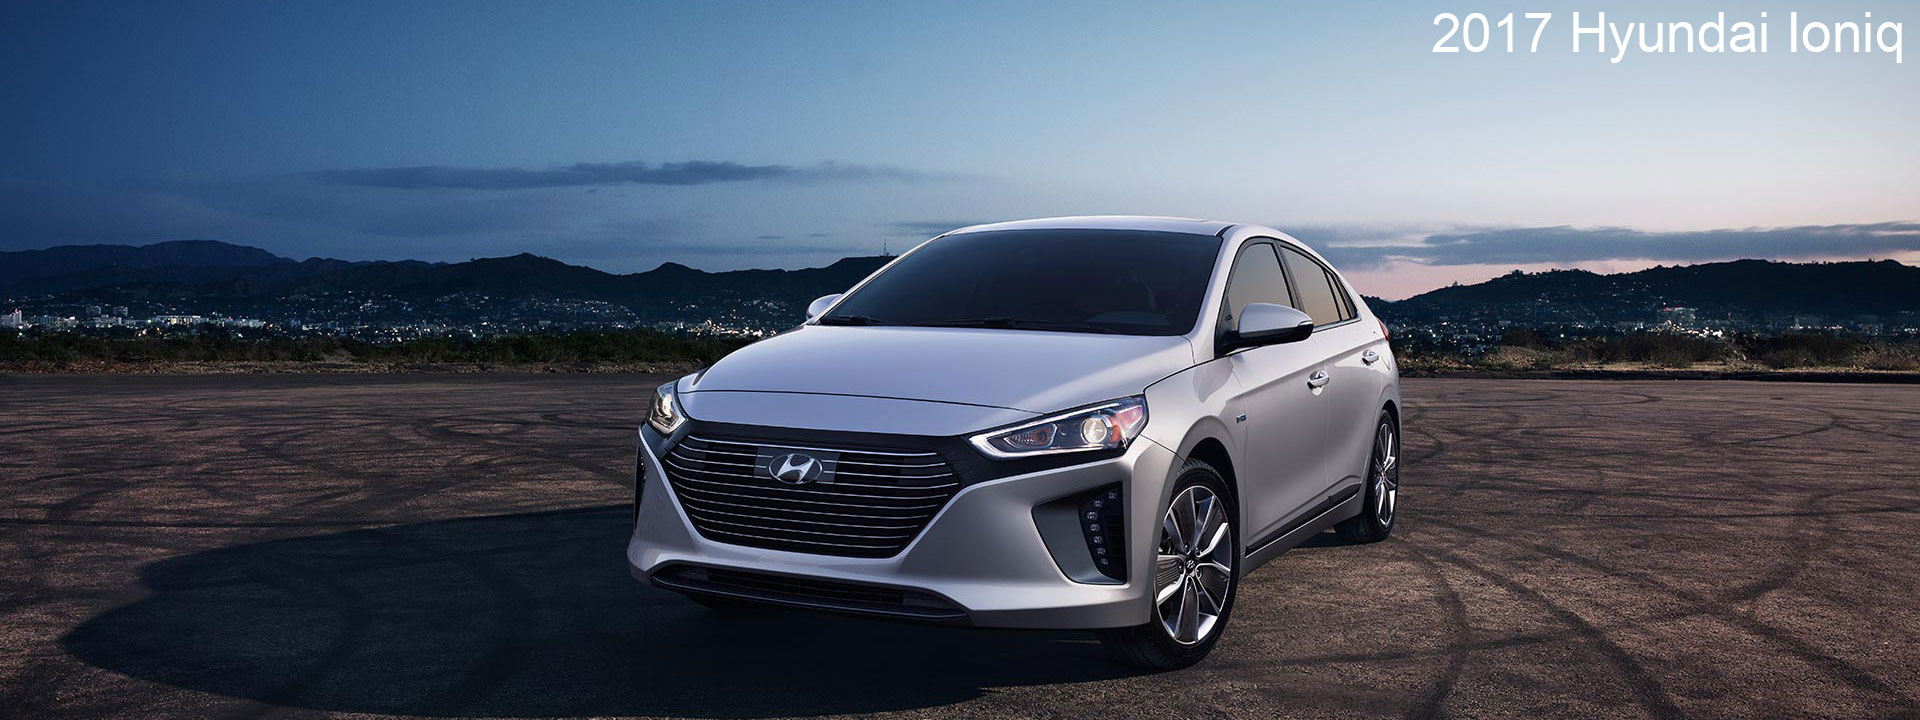 Hyundai Ioniq Palm Beach